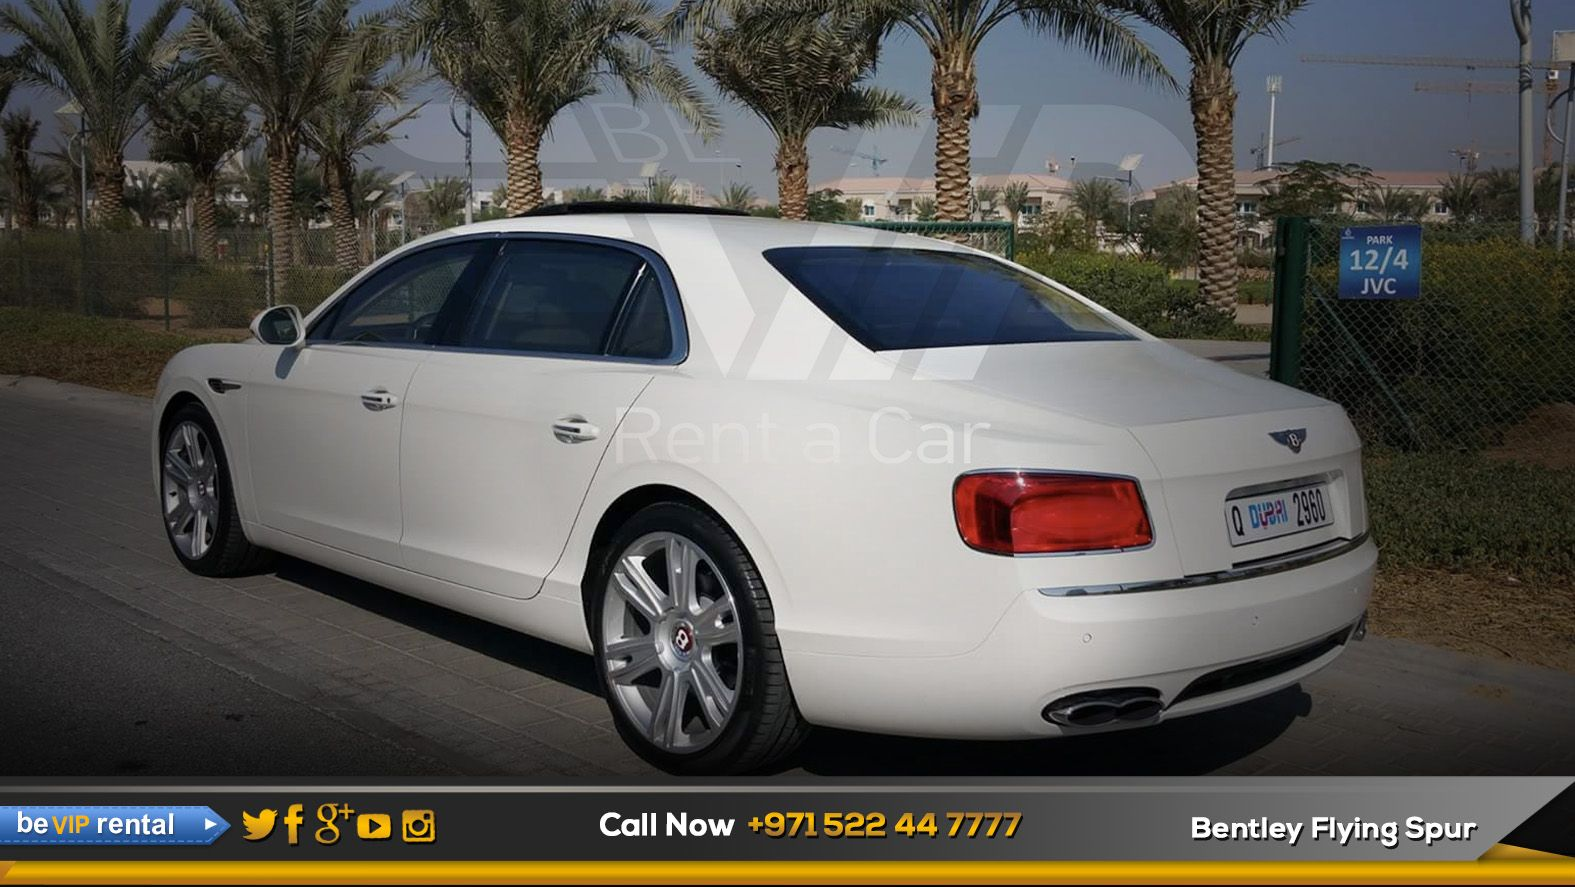 Bentley Flying Spur For Rent In Dubai Sports Cars Luxury Sports Car Rental Luxury Car Rental